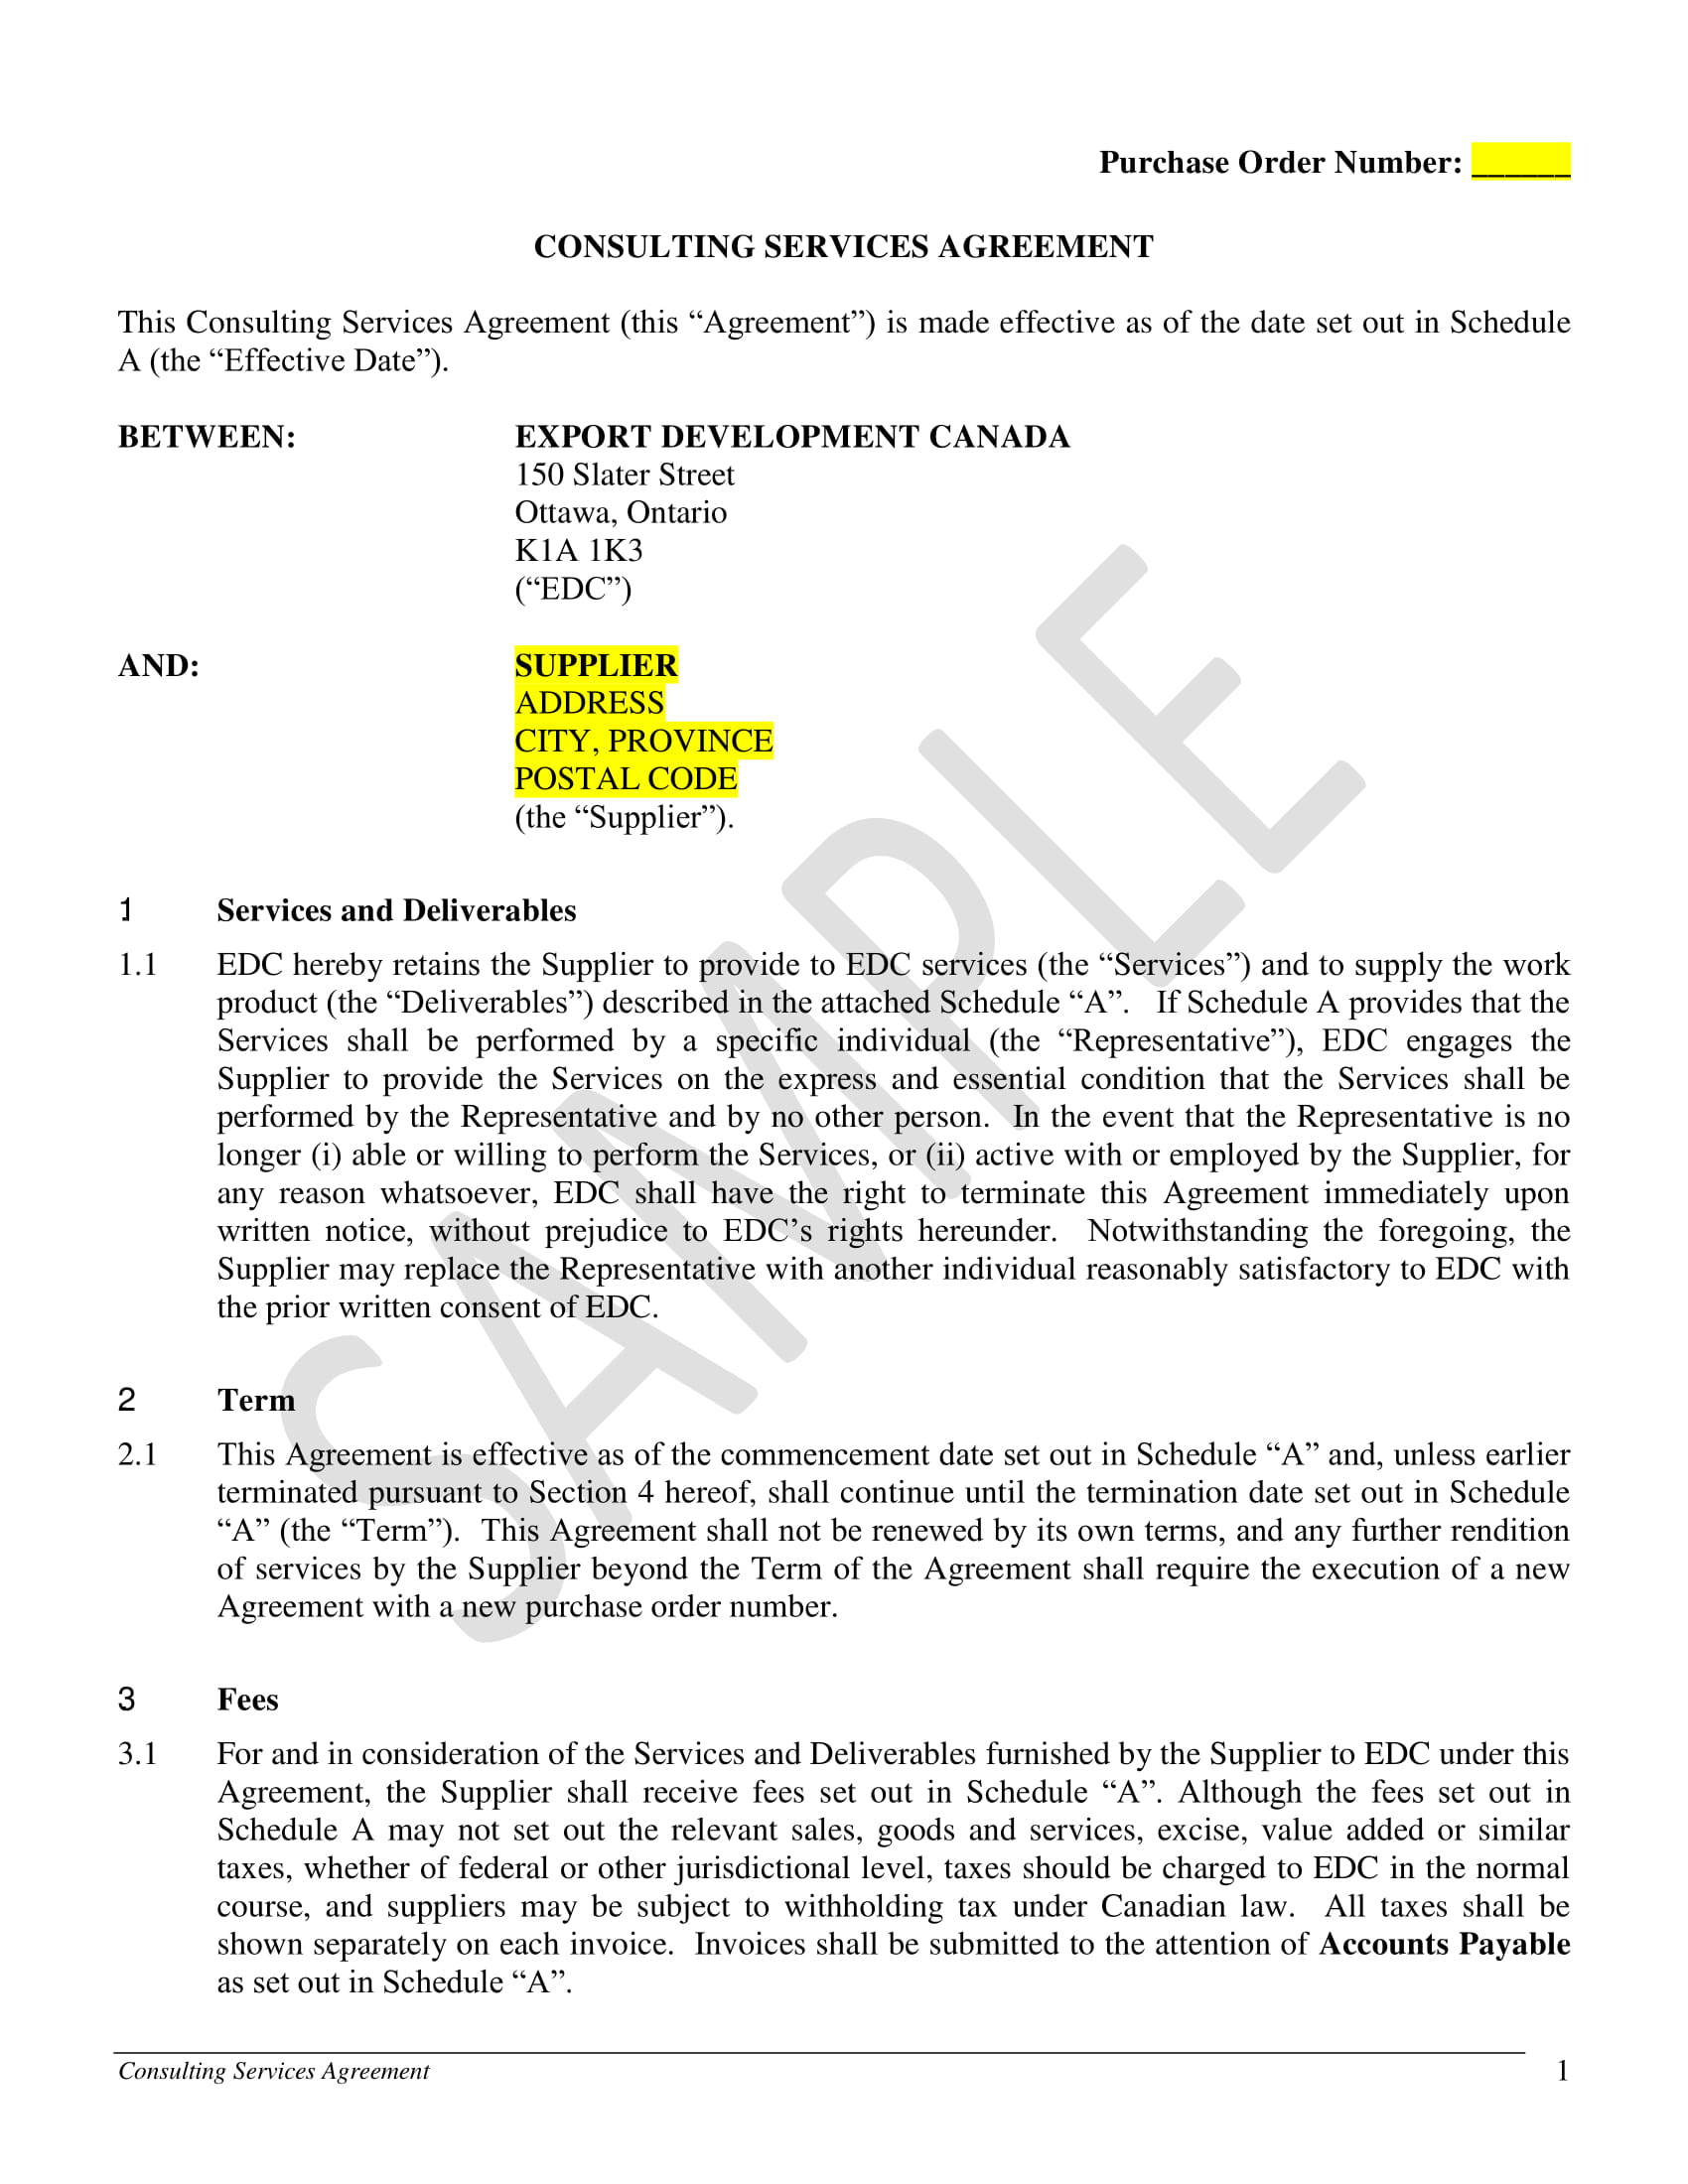 consulting services agreement 01